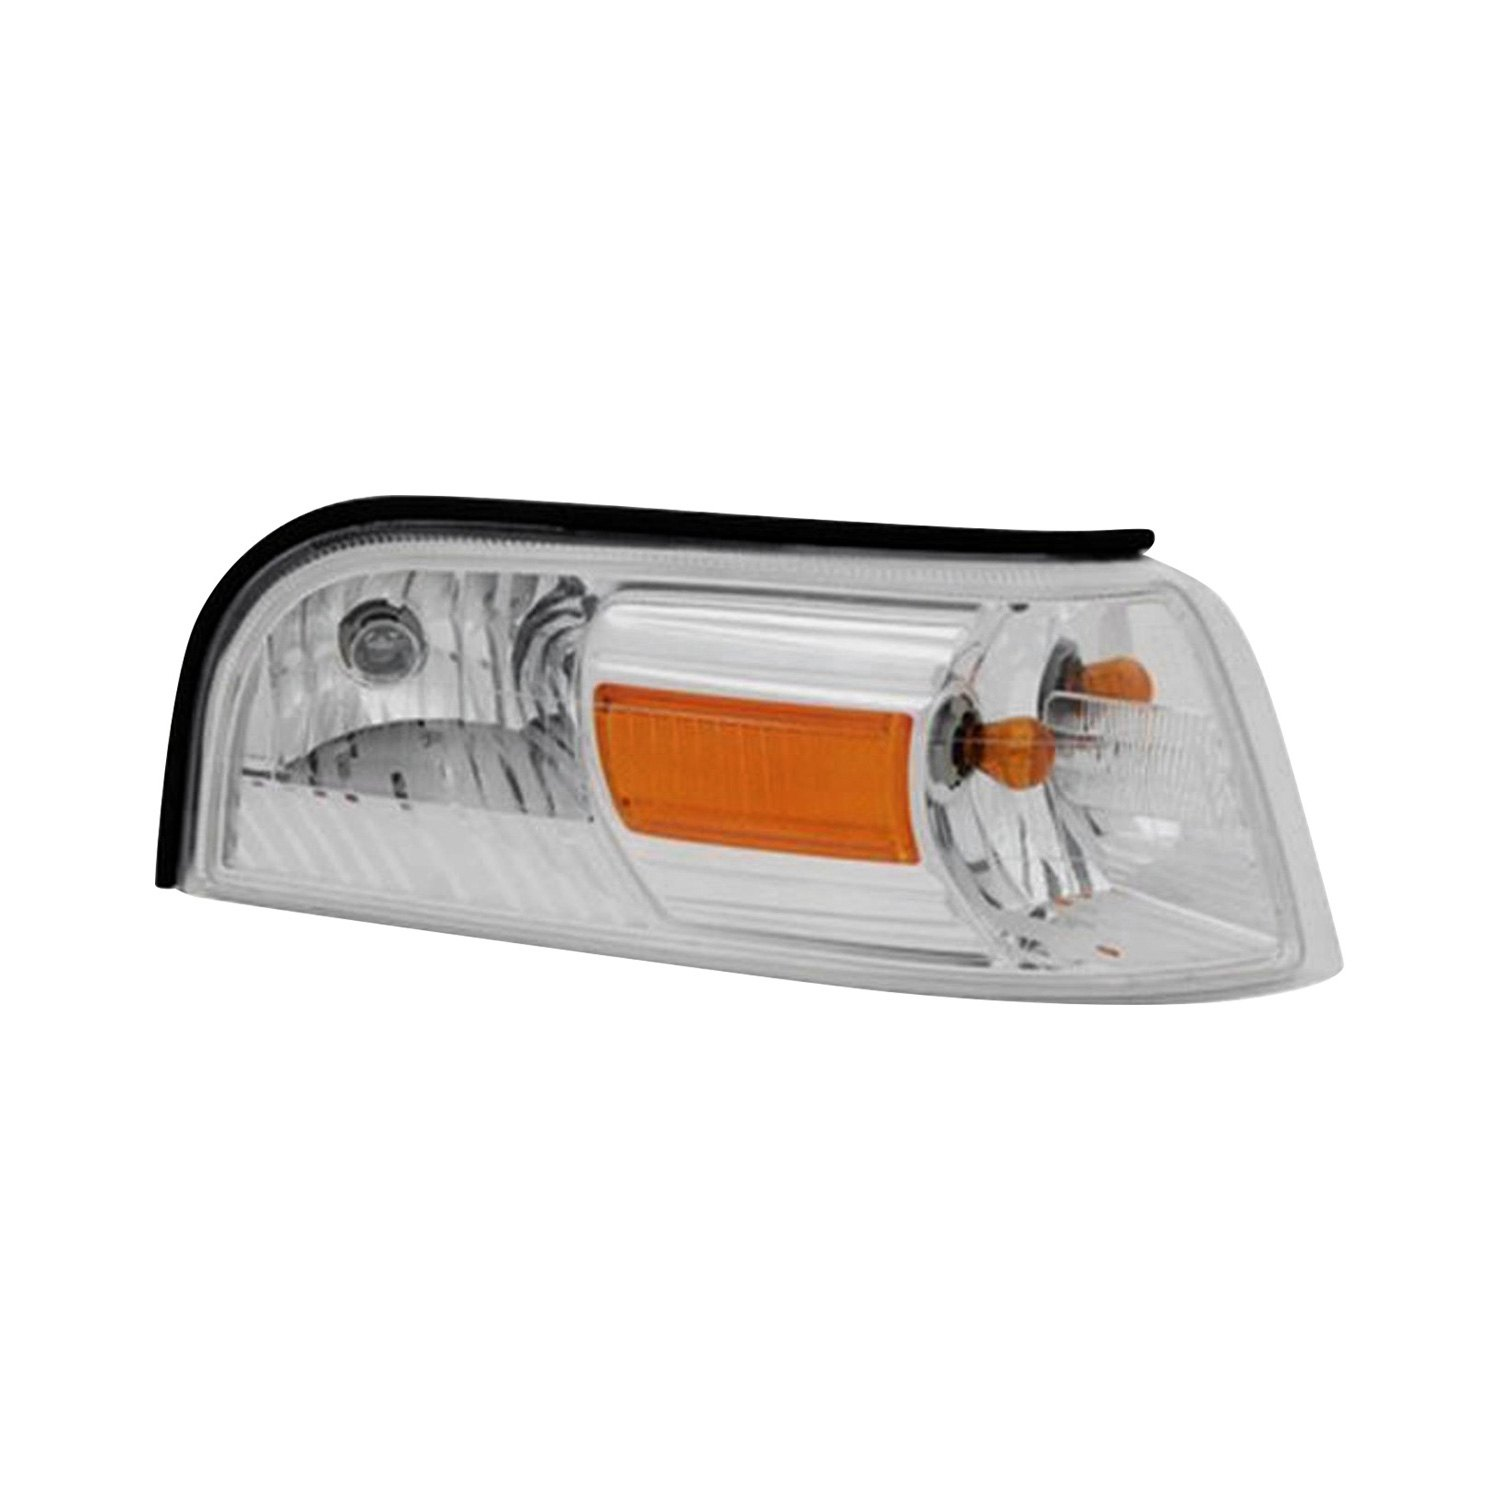 Service Manual Front Parking Light Replacement On A 2009